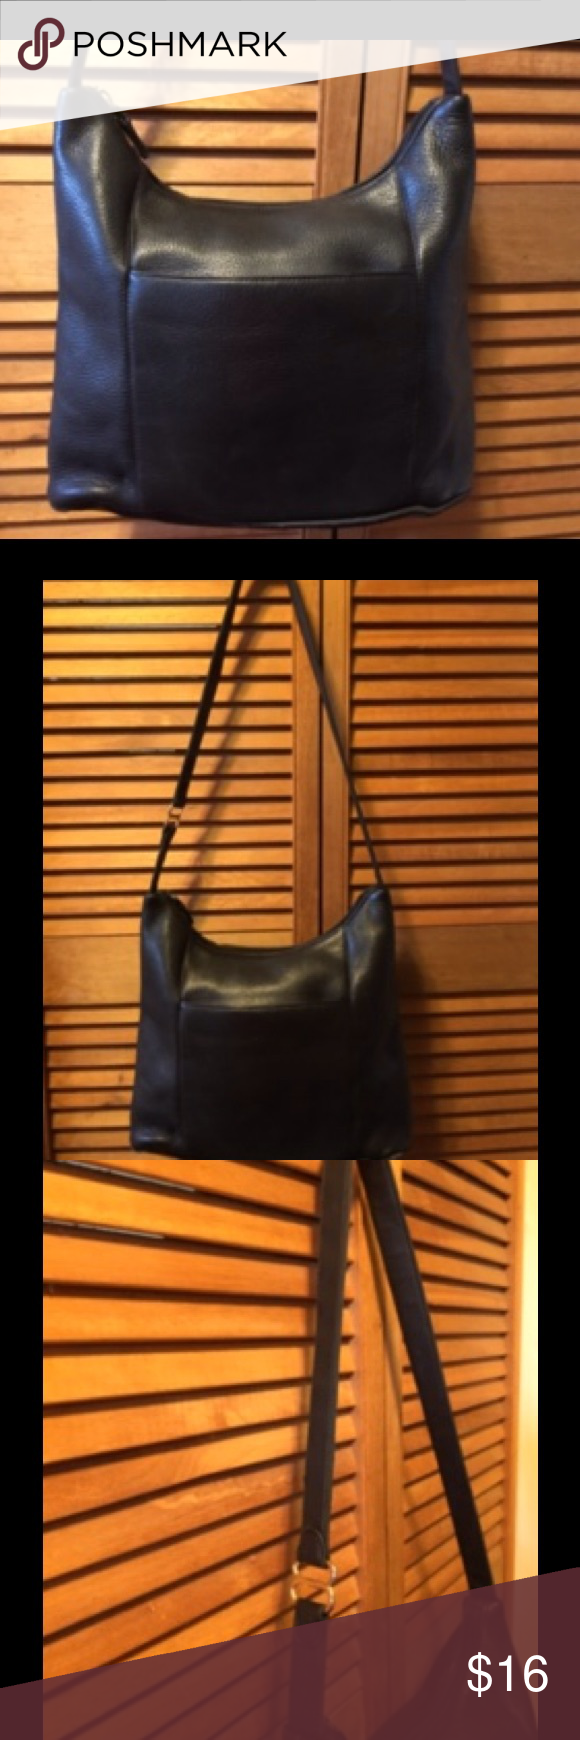 """Carlo D'Santi Black Leather Purse Black leather purse with outside open pocket on the front and back, goldtone hardware, cloth lining with a zippered side pocket, and top zippered closure. Signs of wear on the corners, otherwise in great condition. 13""""x10""""x 4 1/2"""" wide bottom. Carlo D'Santi Bags Shoulder Bags"""